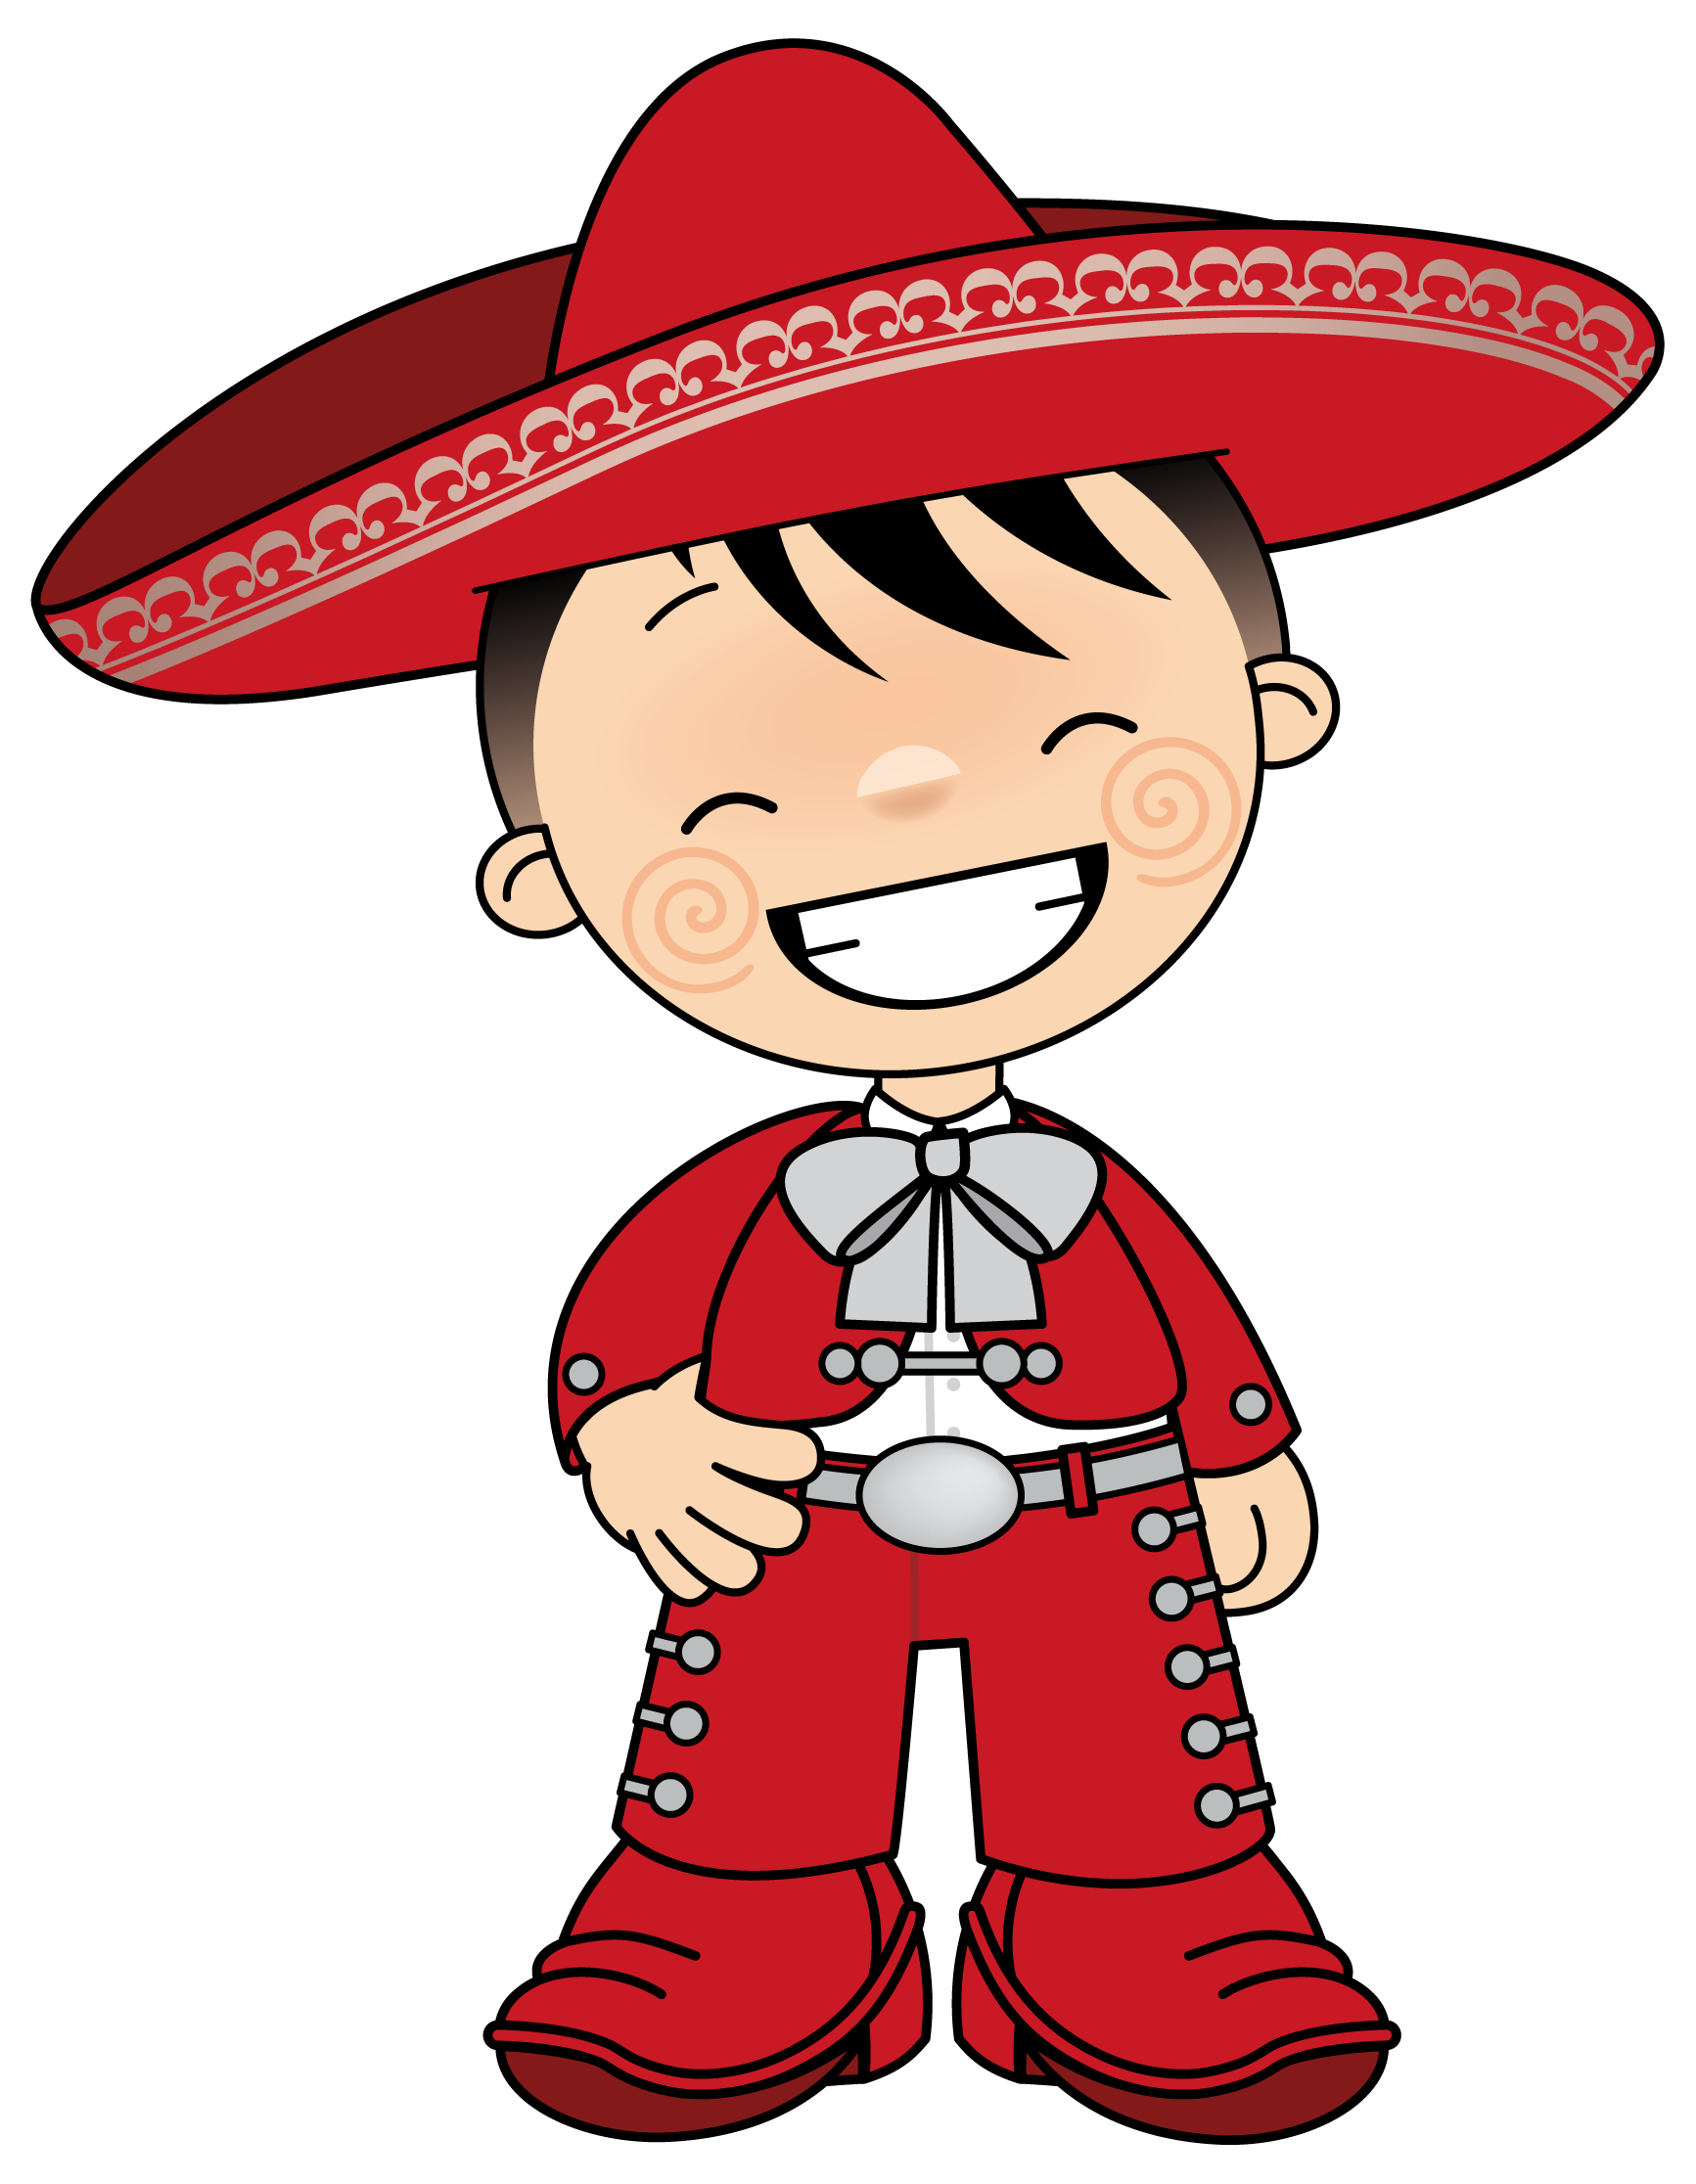 Maracas drawing traditional clothing mexican. Mexicano cinco de mayo